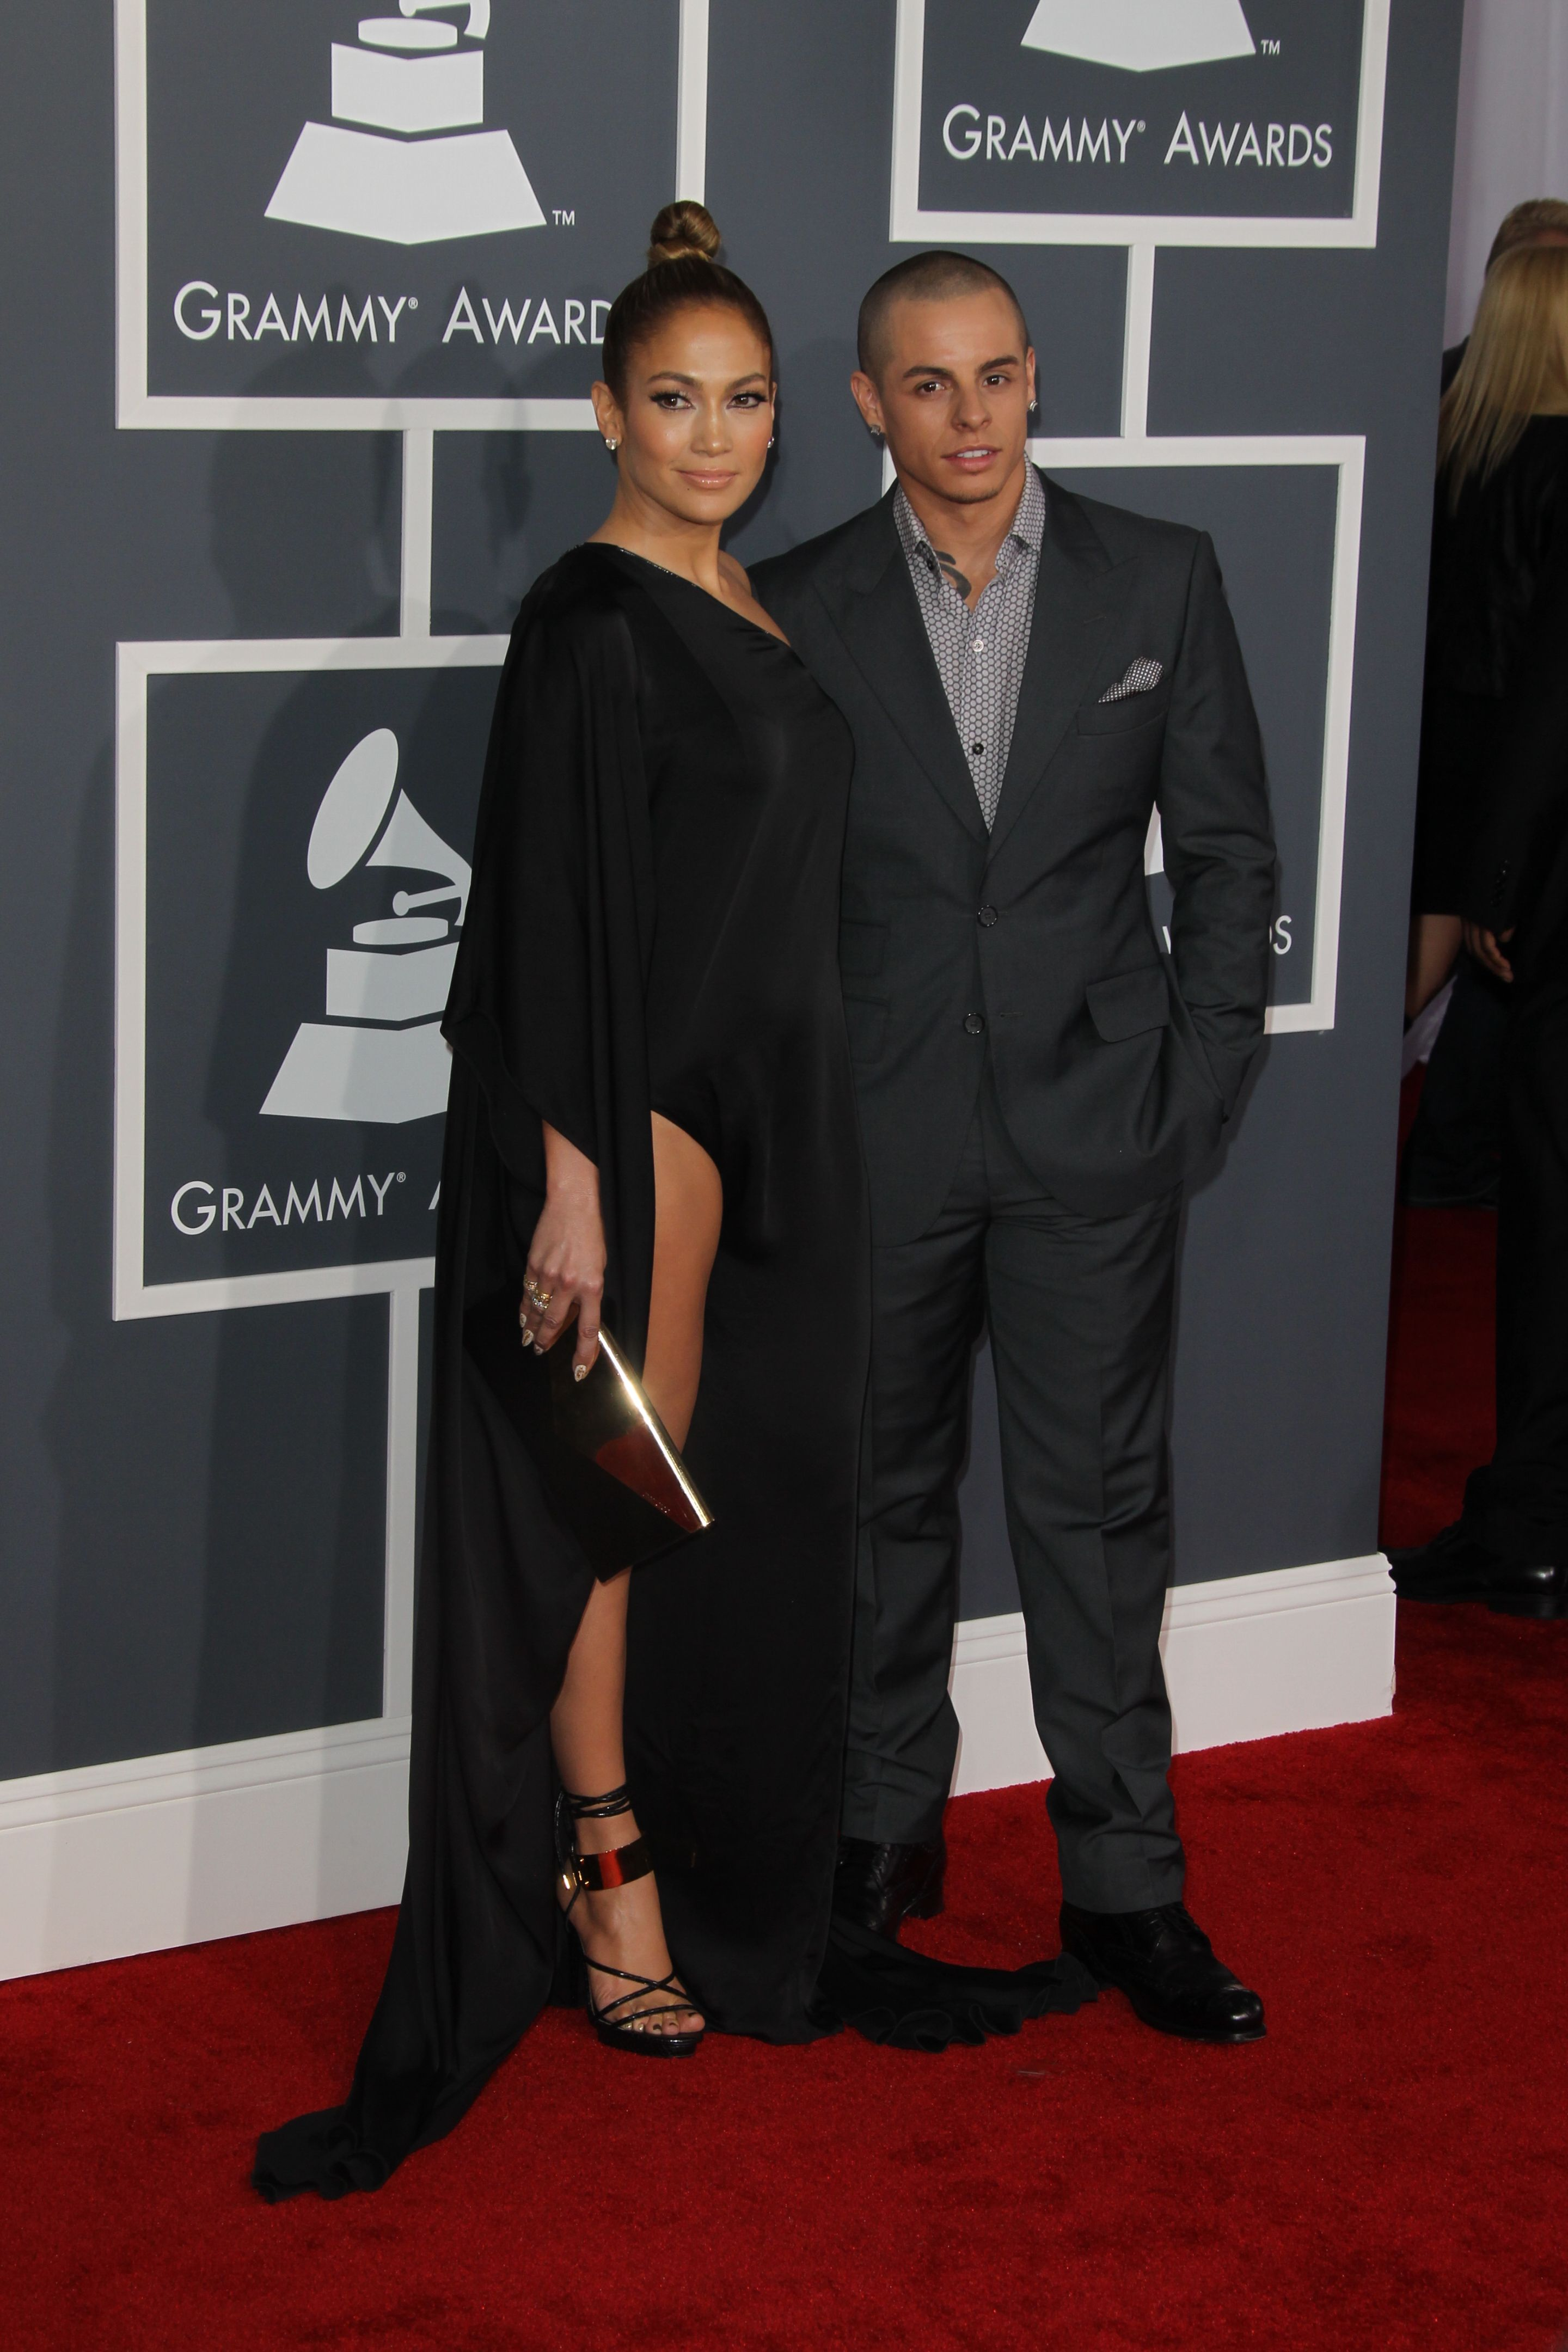 Jennifer Lopez and Casper Smart at the Grammy Awards | Source: Gettty Images